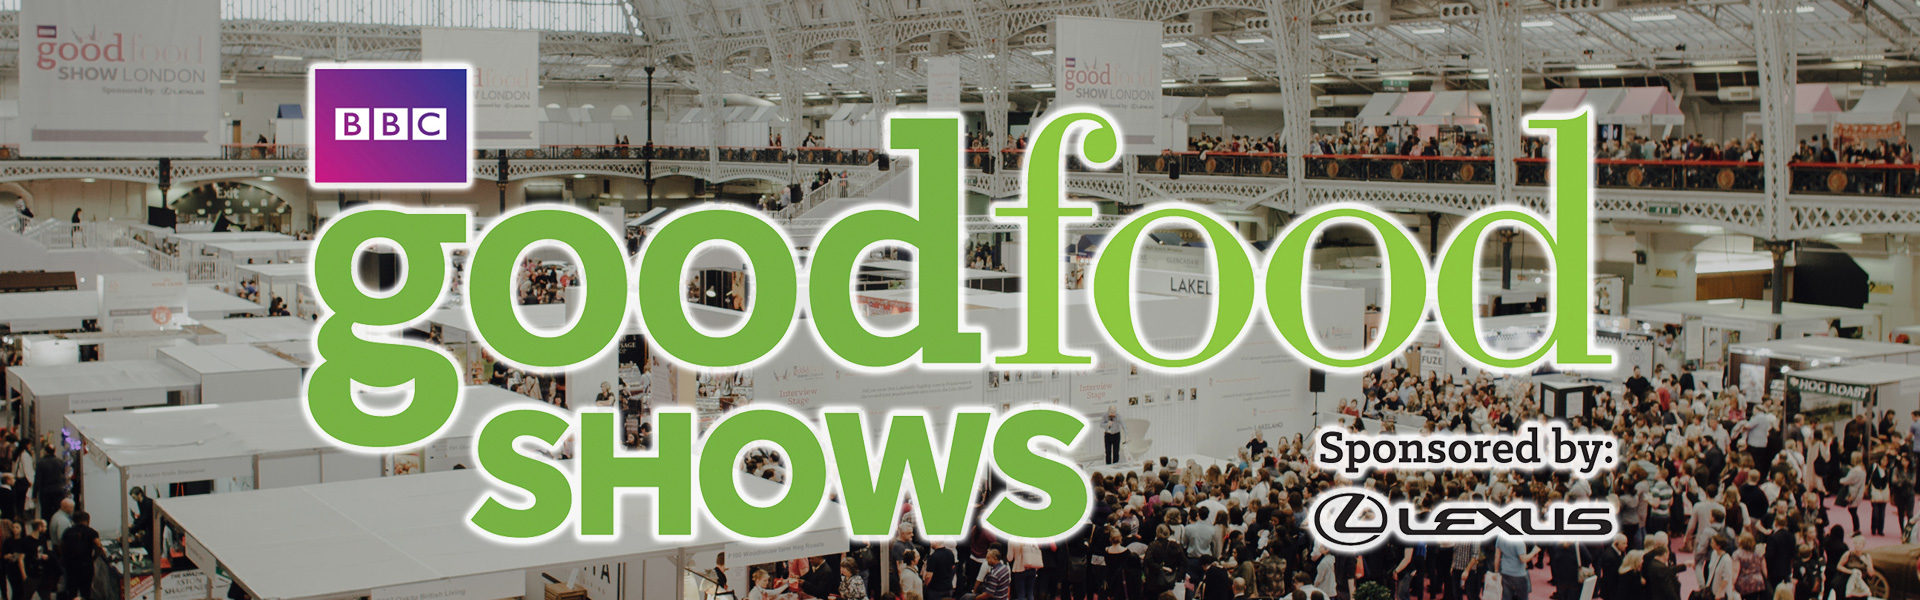 BBC Good Food Shows 2017